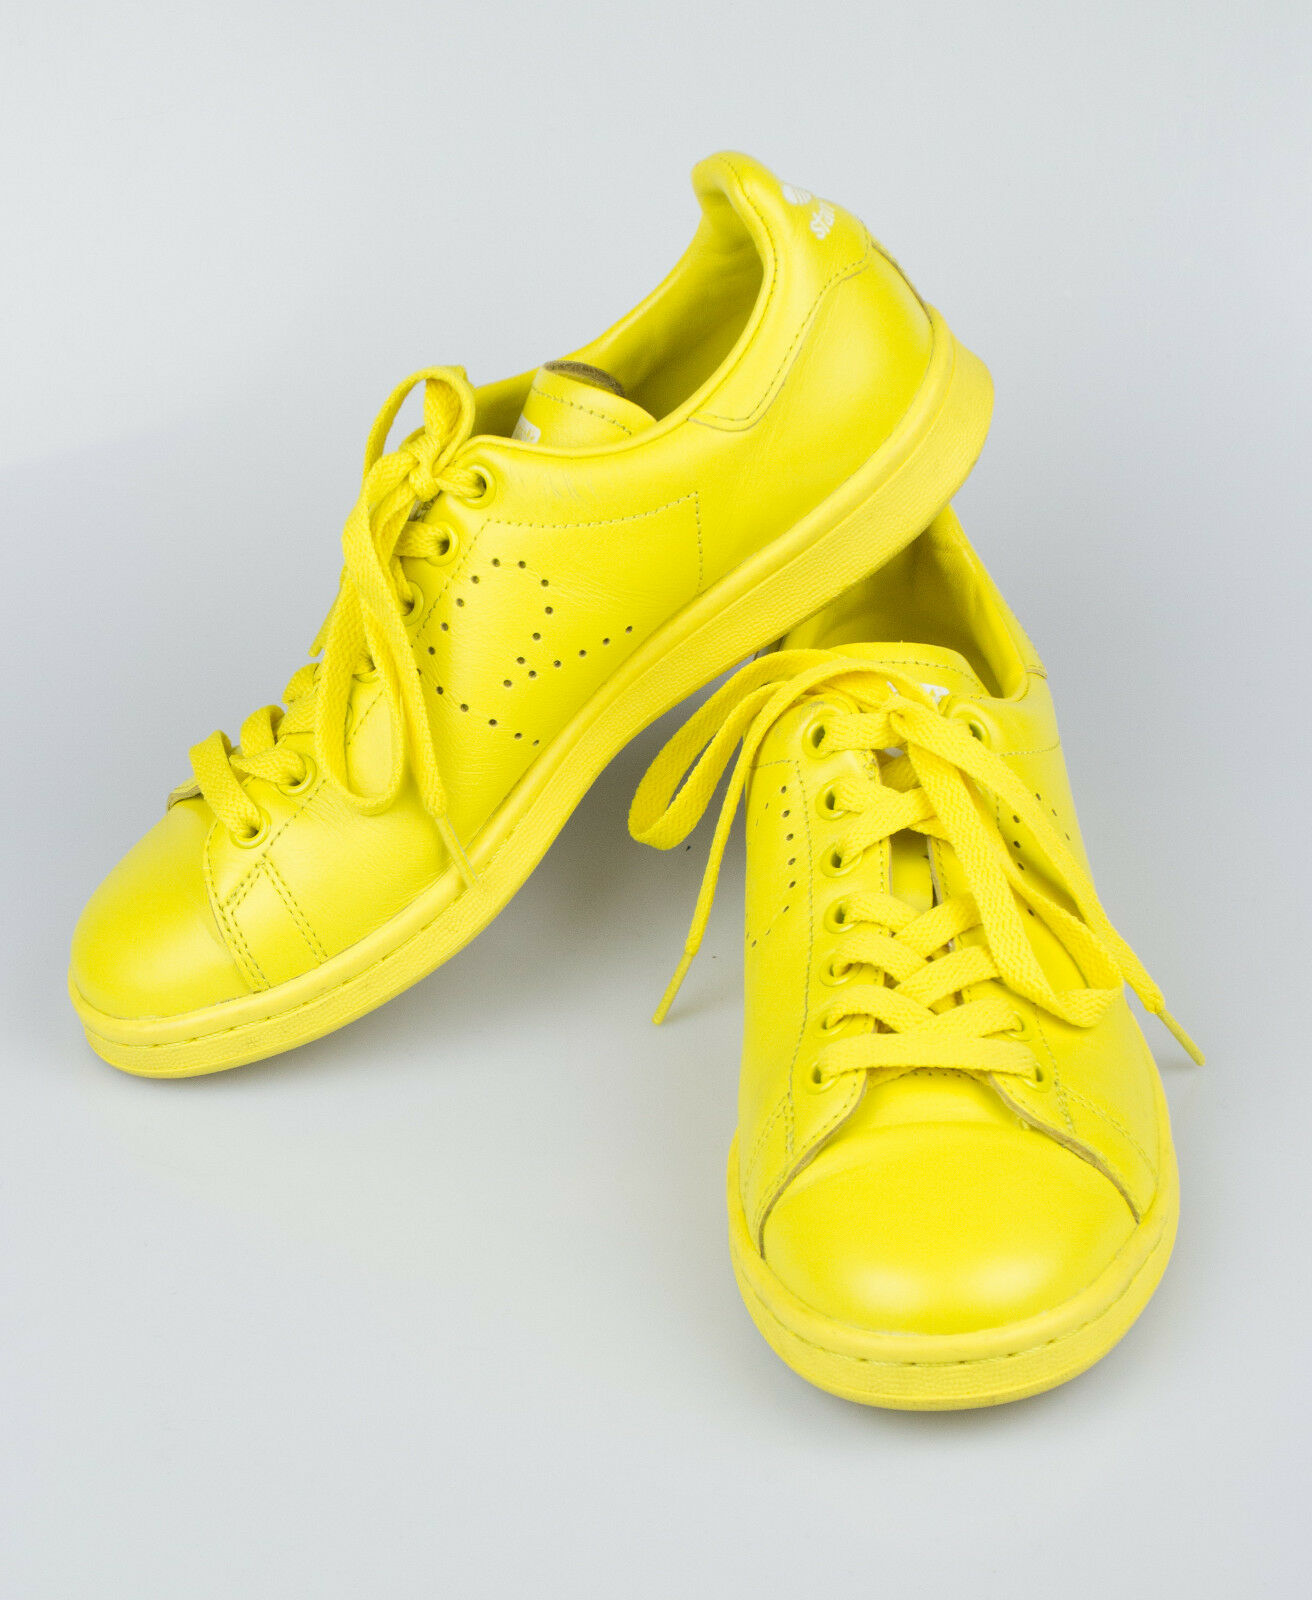 New. ADIDAS RAF SIMONS STAN SMITH Yellow Leather Sneakers Shoes 6.5/39.5 455